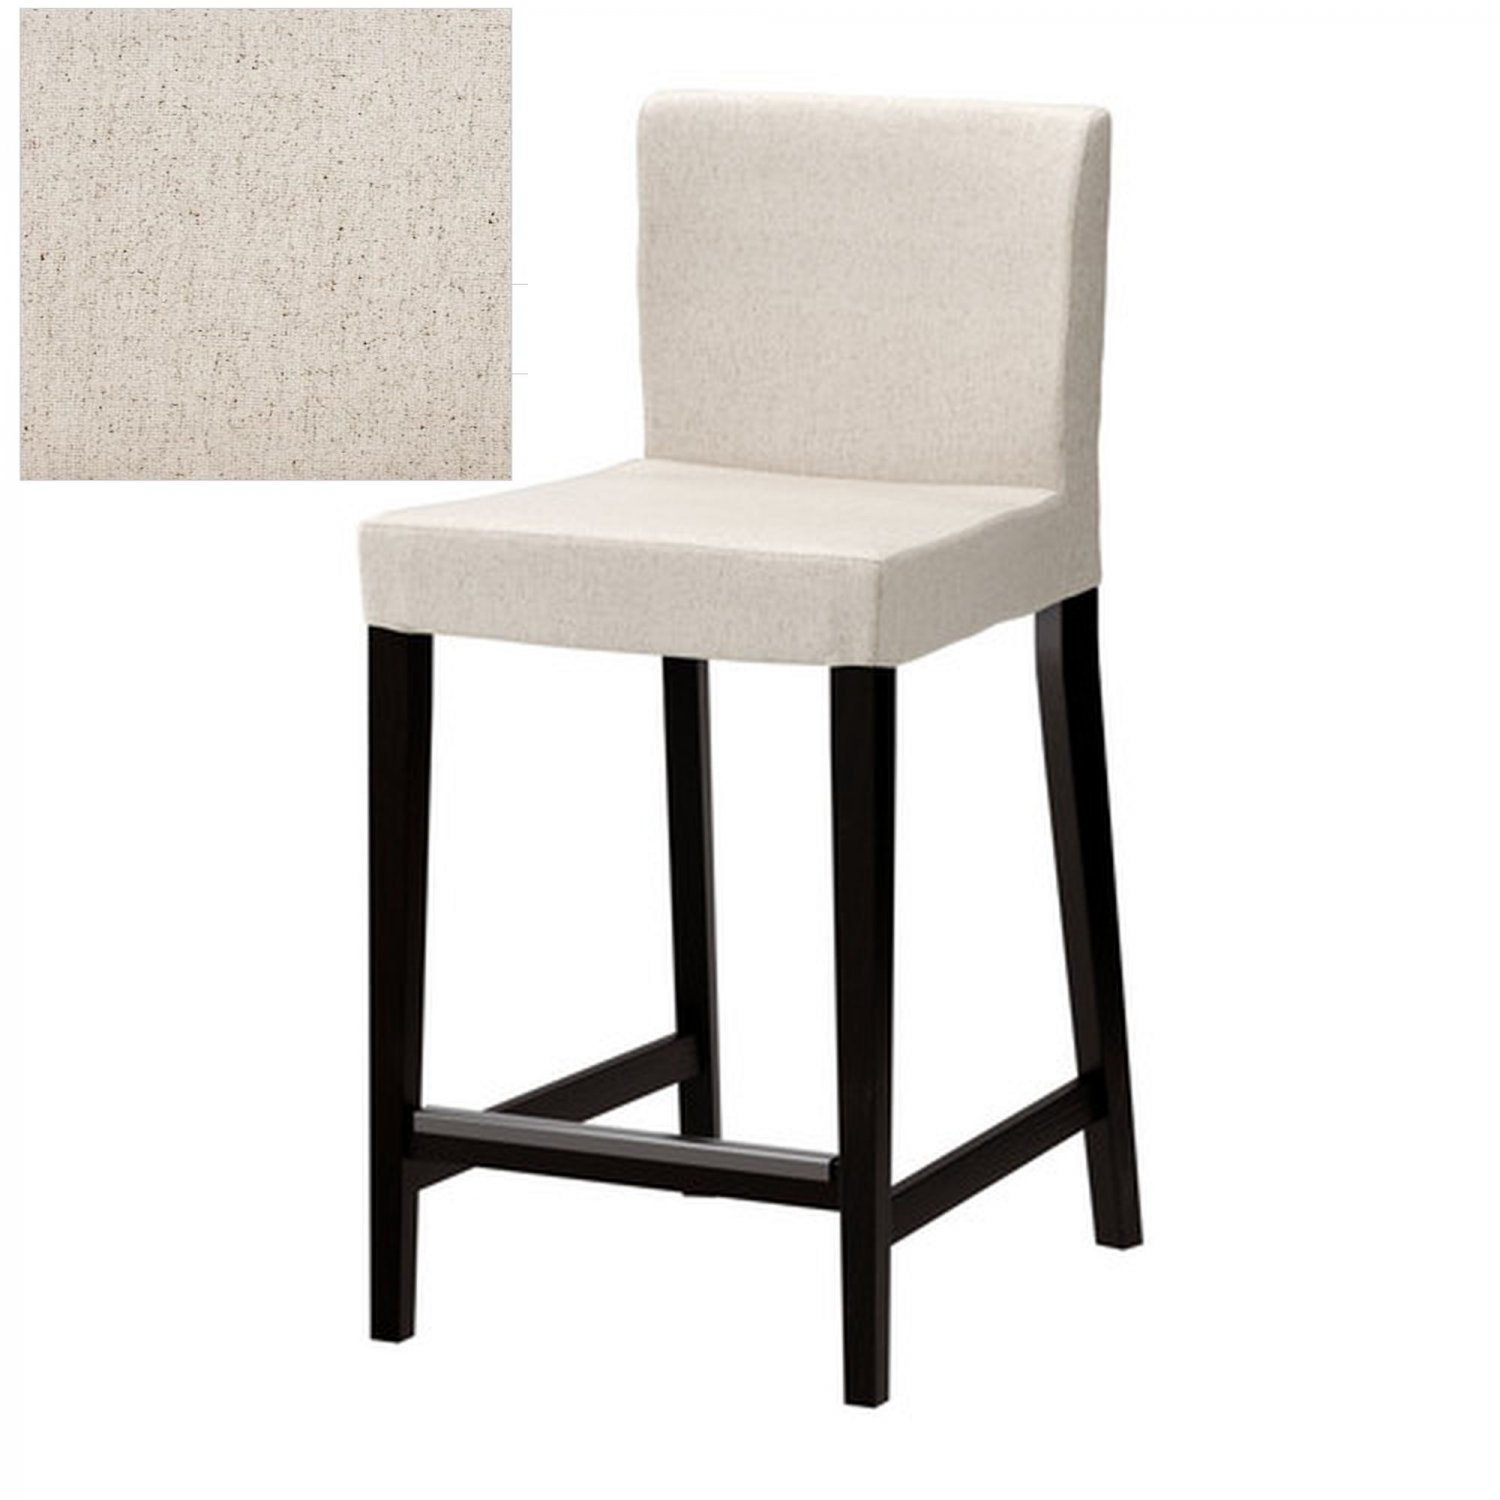 Ikea Henriksdal Linneryd Natural Bar Stool Slipcover